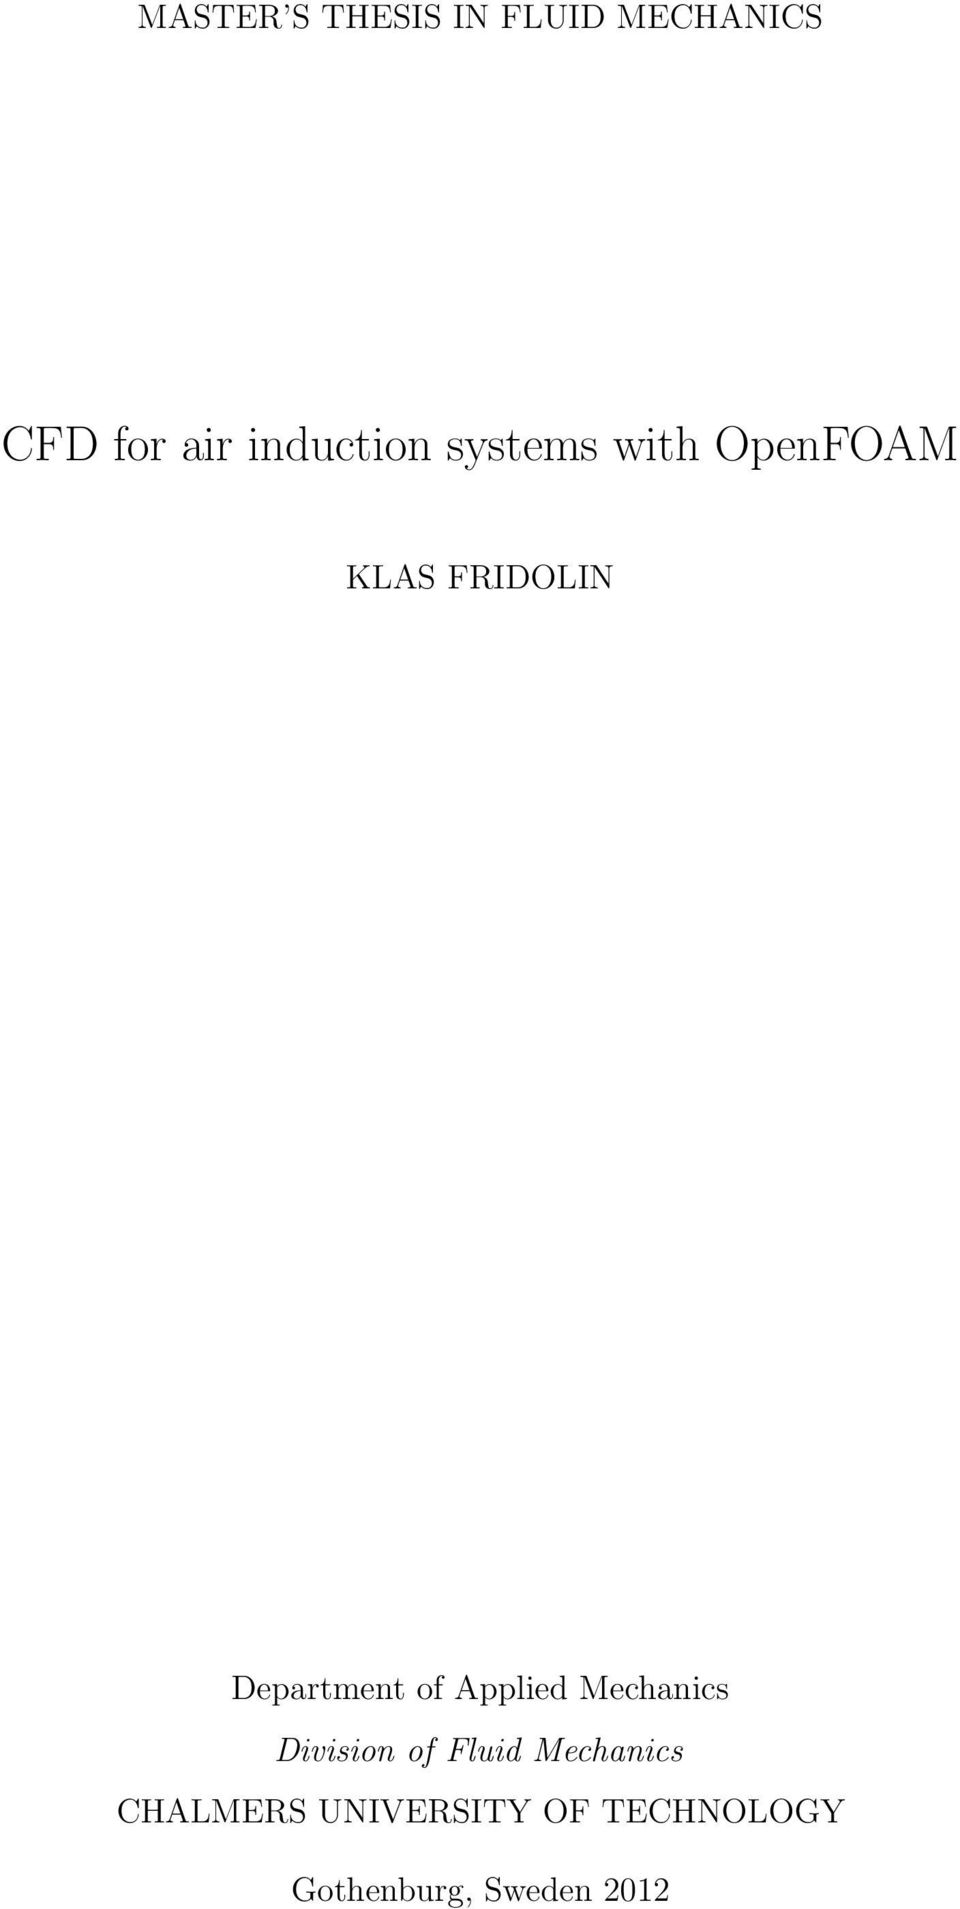 fluid mechanics thesis Combining modern learning pedagogies in fluid mechanics and heat transfer by paul b golter a thesis submitted in partial fulfillment of the requirements for the.